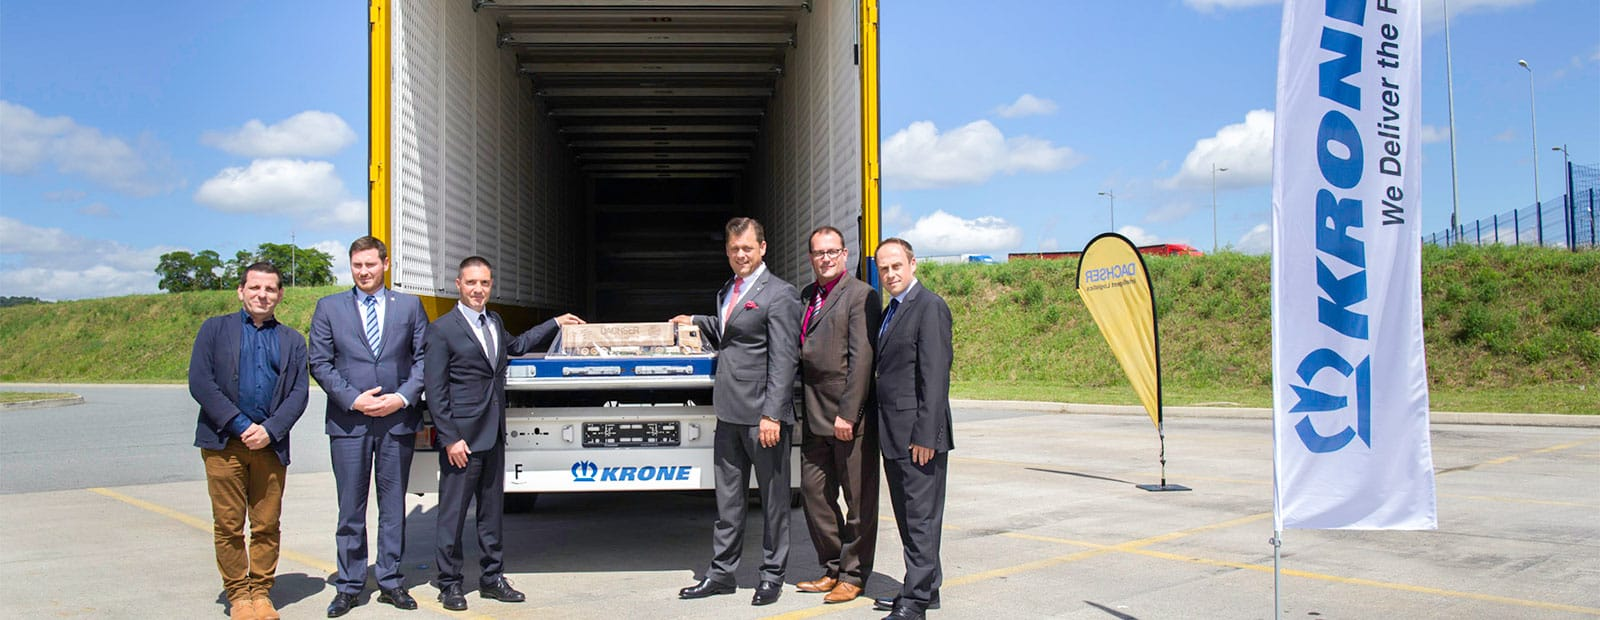 500th Krone box trailer for Dachser France